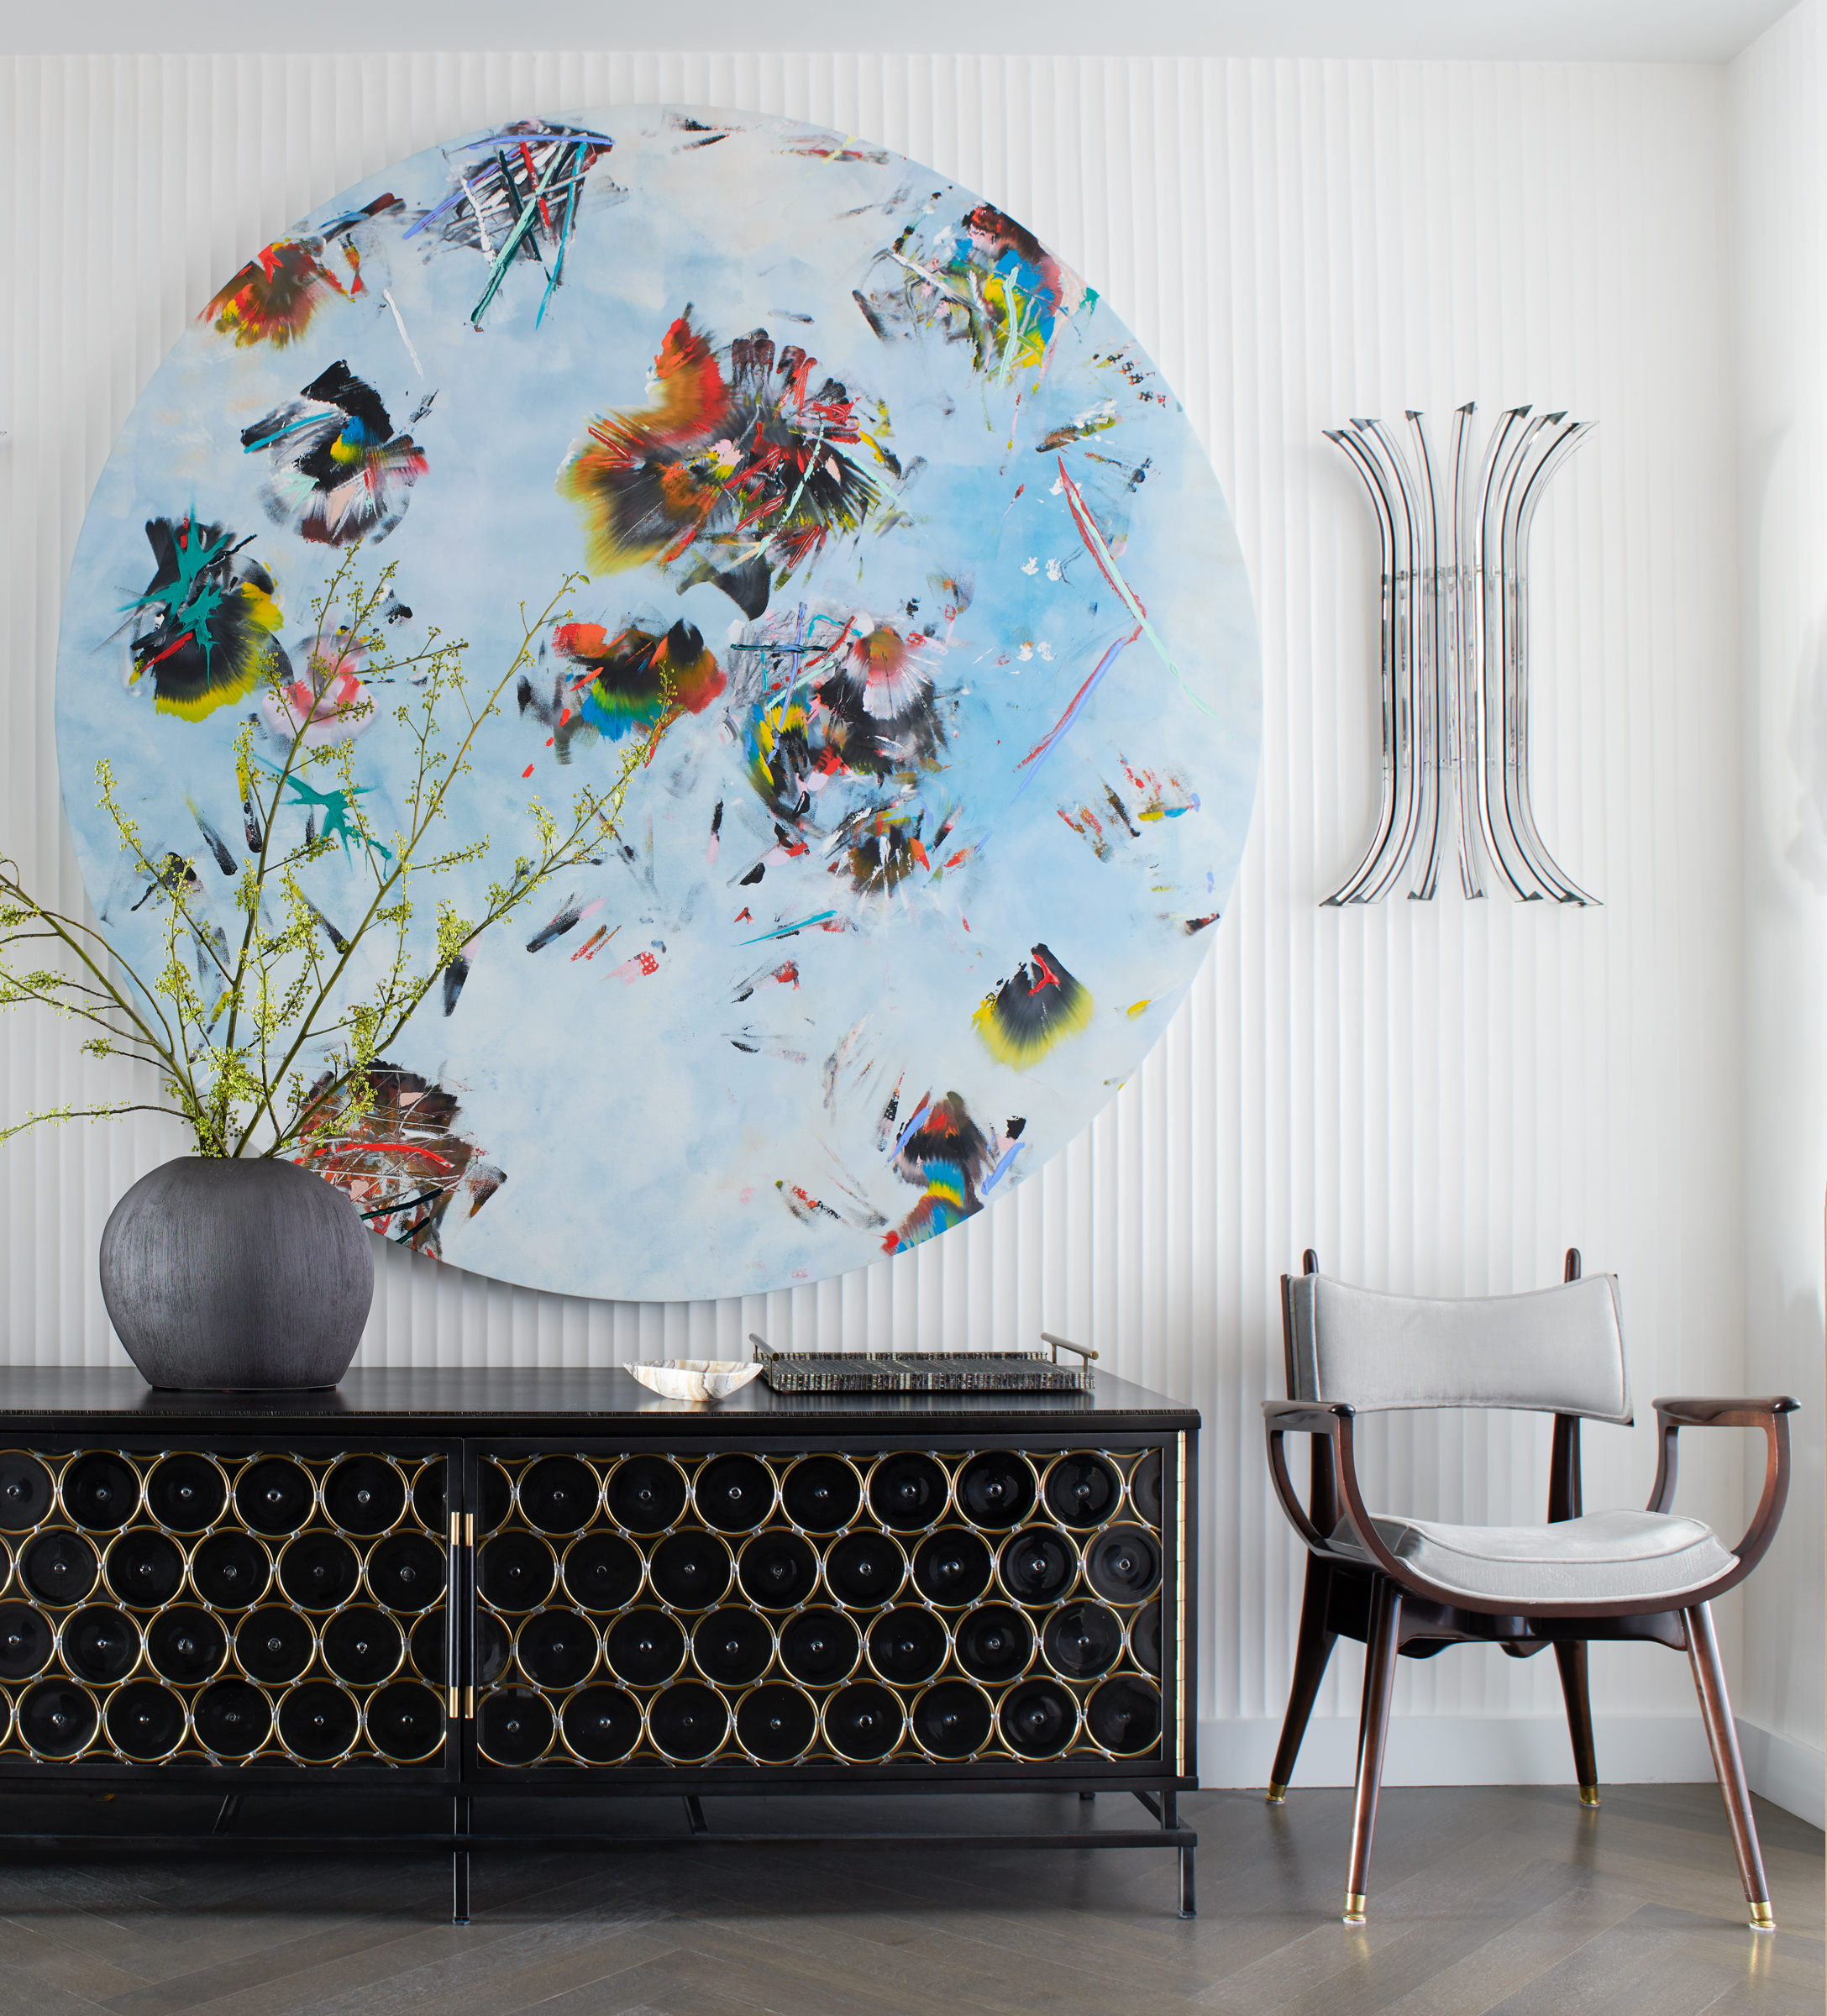 A vibrant blue floral art piece sits in a foyer